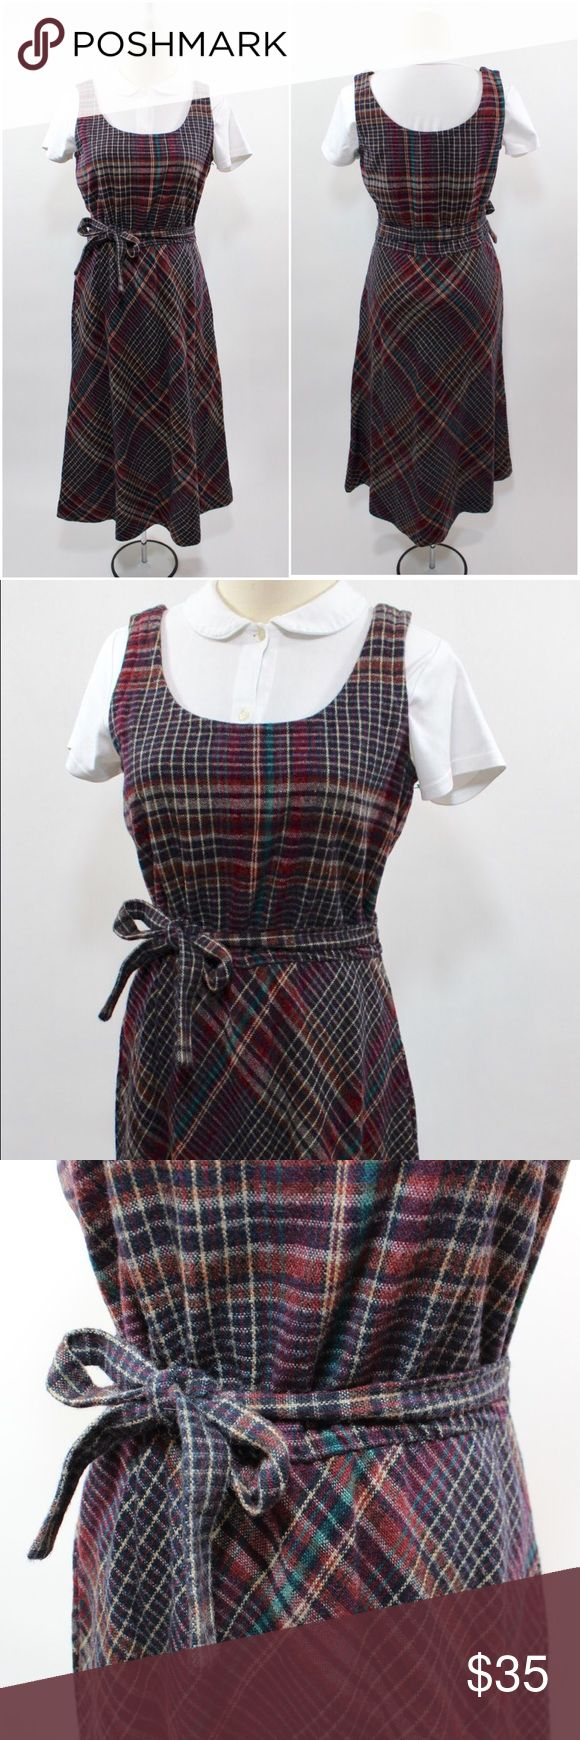 """1970's Wool Tartan Plaid Jumper Dress A women's vintage 1970's gray and burgundy red tartan plaid wool jumper dress with an elastic waist and tie belt to cinch. This dress also has pockets.  -+- Condition -+- Excellent vintage condition with no flaws   -+- Measurements -+- (already doubled where necessary) Bust, from pit to pit - 36"""" Waist - 31""""-34"""", but can be made smaller with the tie belt. Hips -  42"""" Length - 45"""" Material/Tag - Act I - Wool - Vintage size 9/10 Vintage Dresses Midi"""